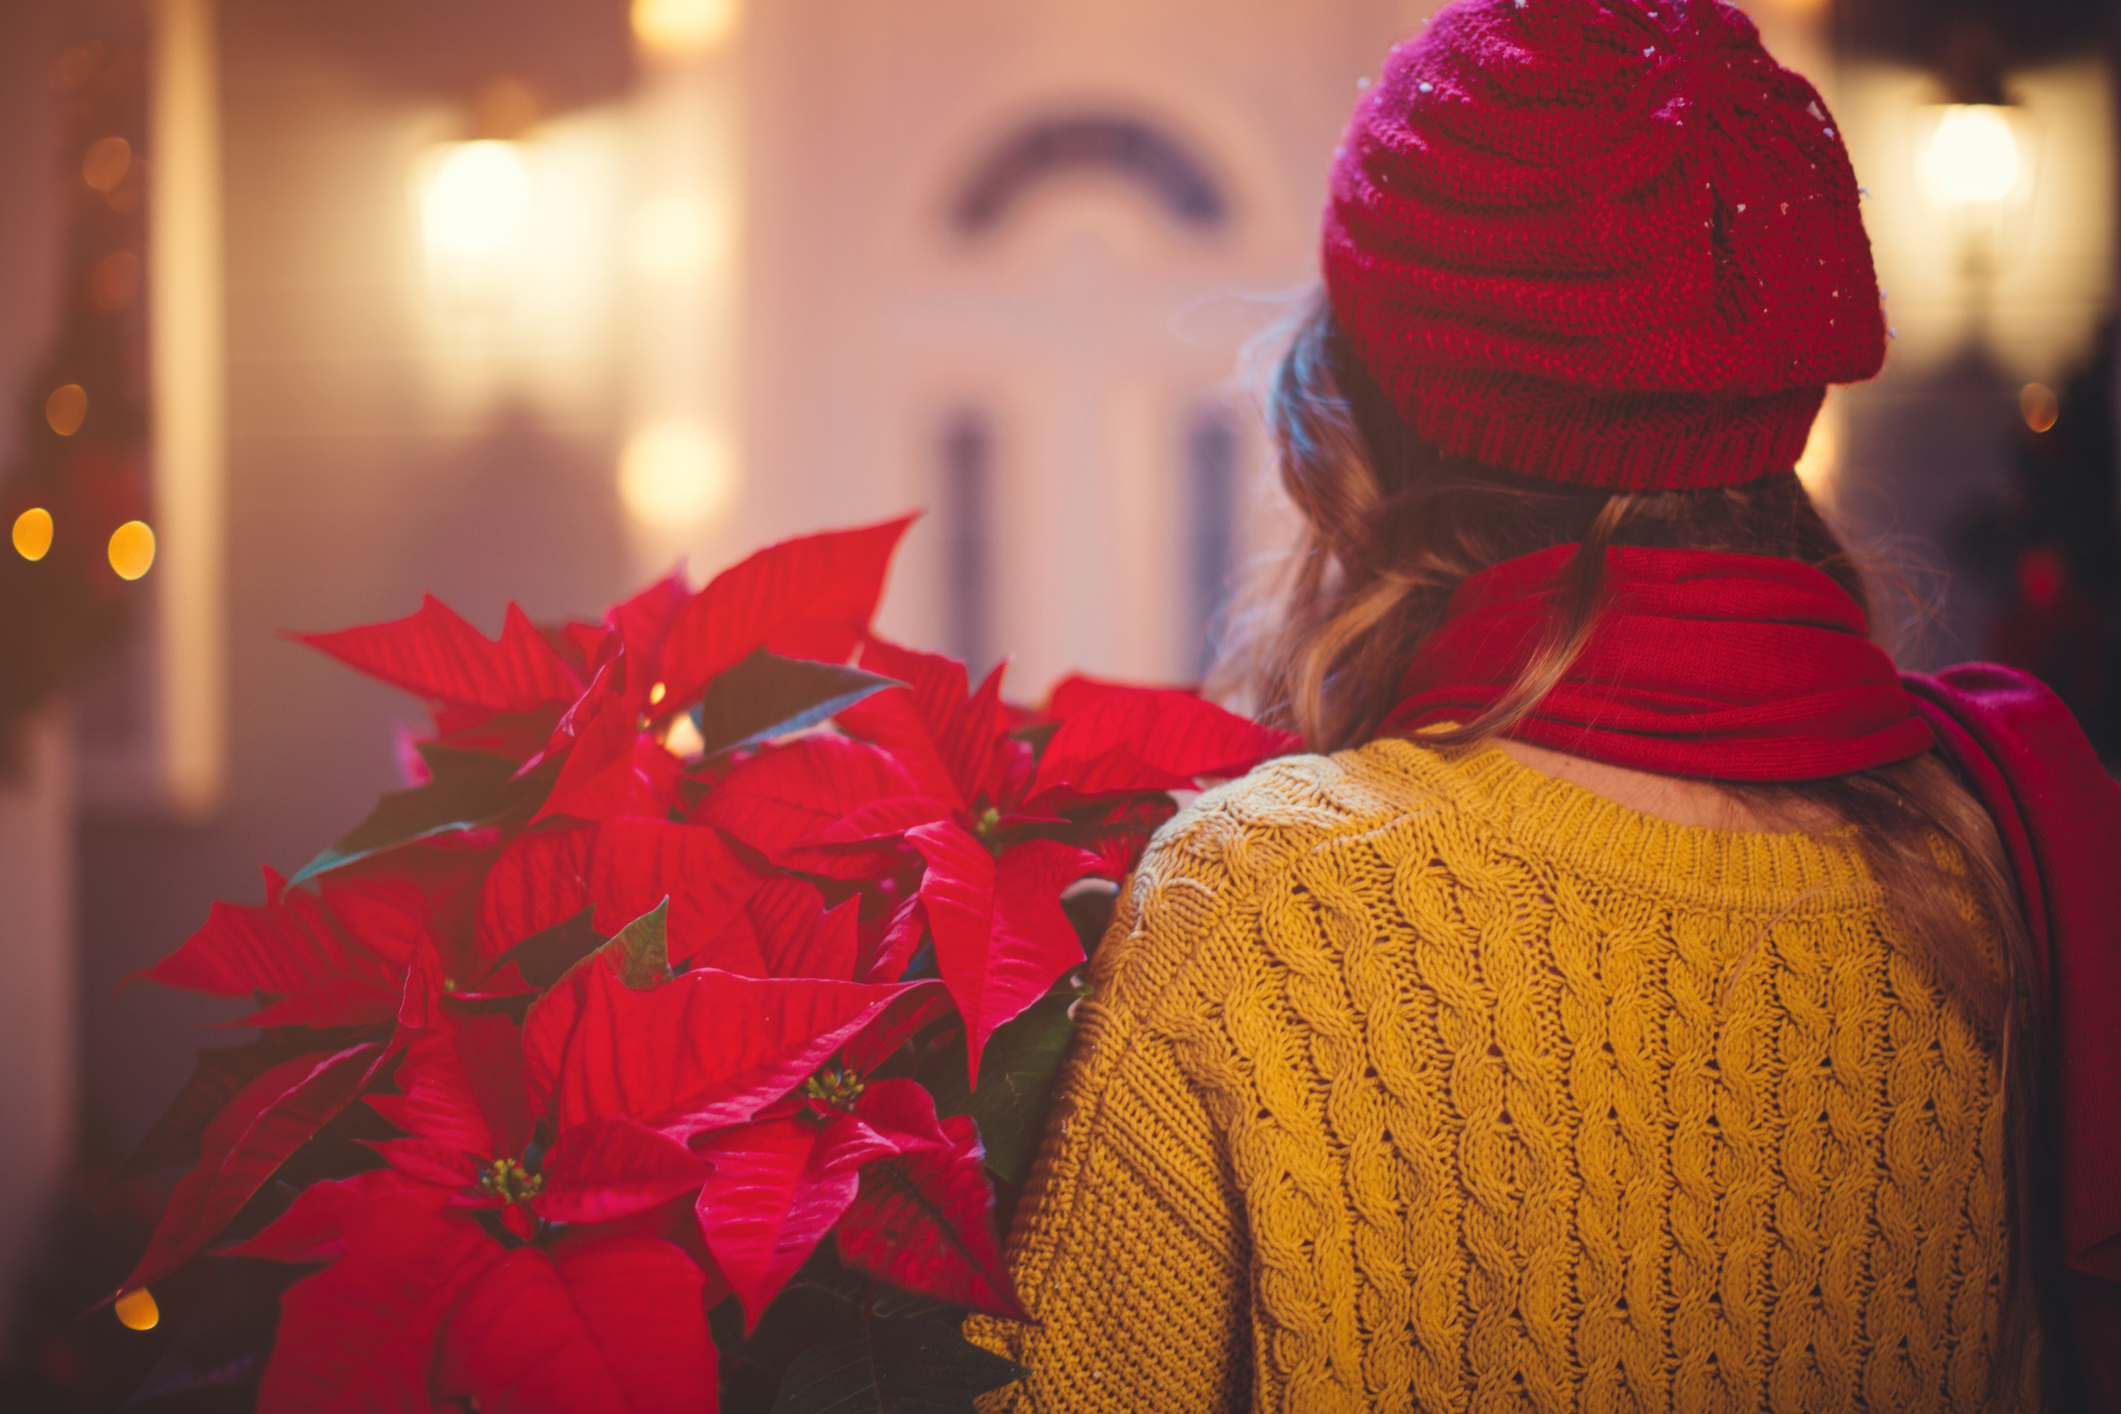 Rear view of caucasian woman outdoors in front of house. Holding christmas flowers. Wearing knitted sweater, hat and scarf. House, yard and tree are decorated with festive string lights. Evening or night with beautiful yellow lights lightning the scenes.